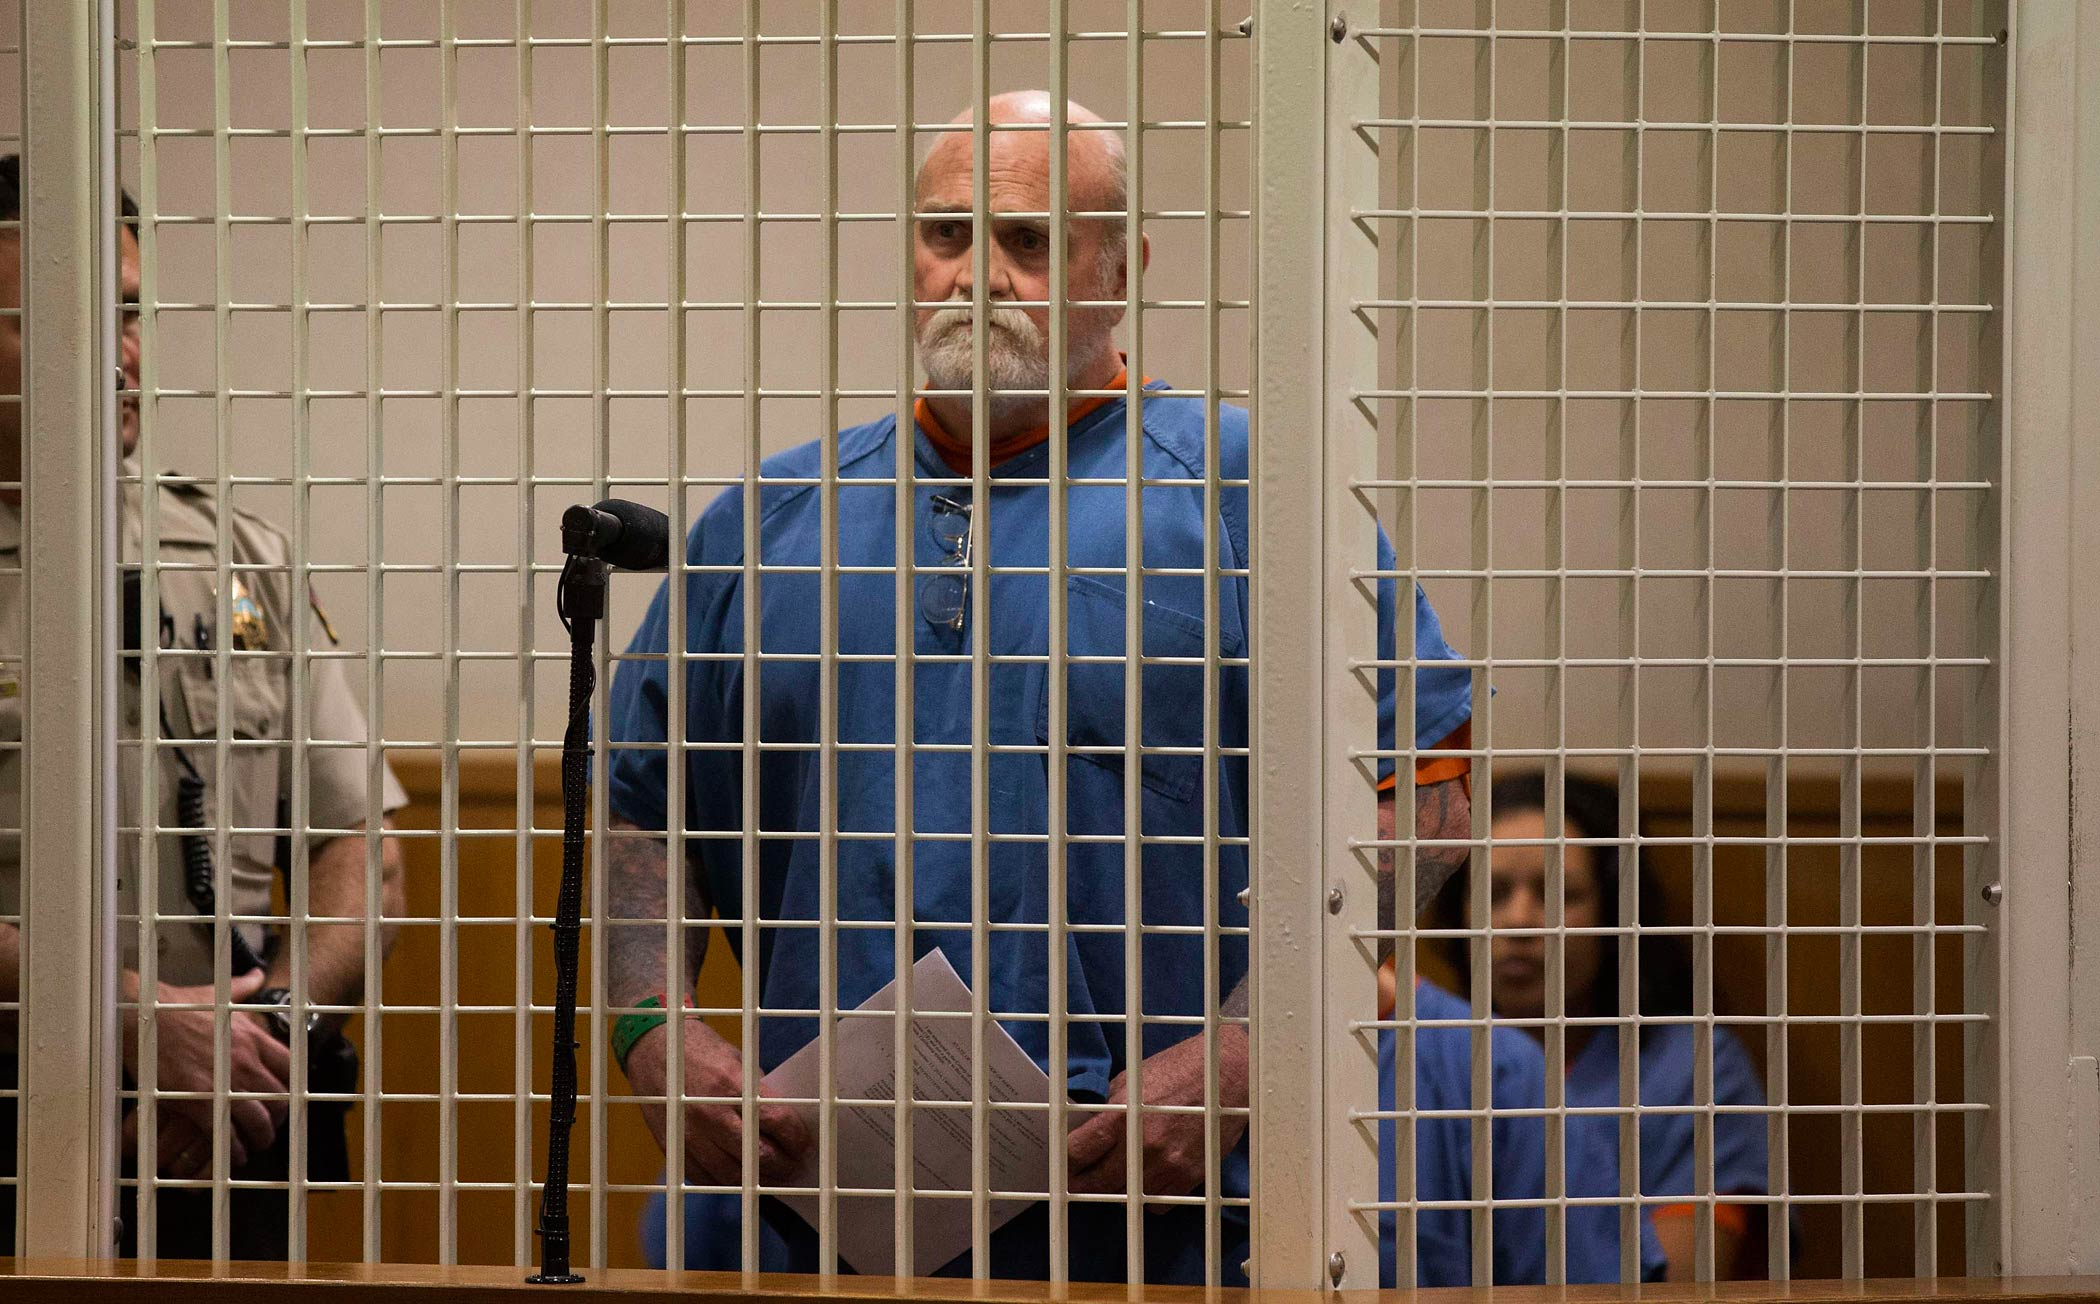 Michael Hanline waits in a cell during a hearing at Superior Court in Ventura, California on November 24, 2014.